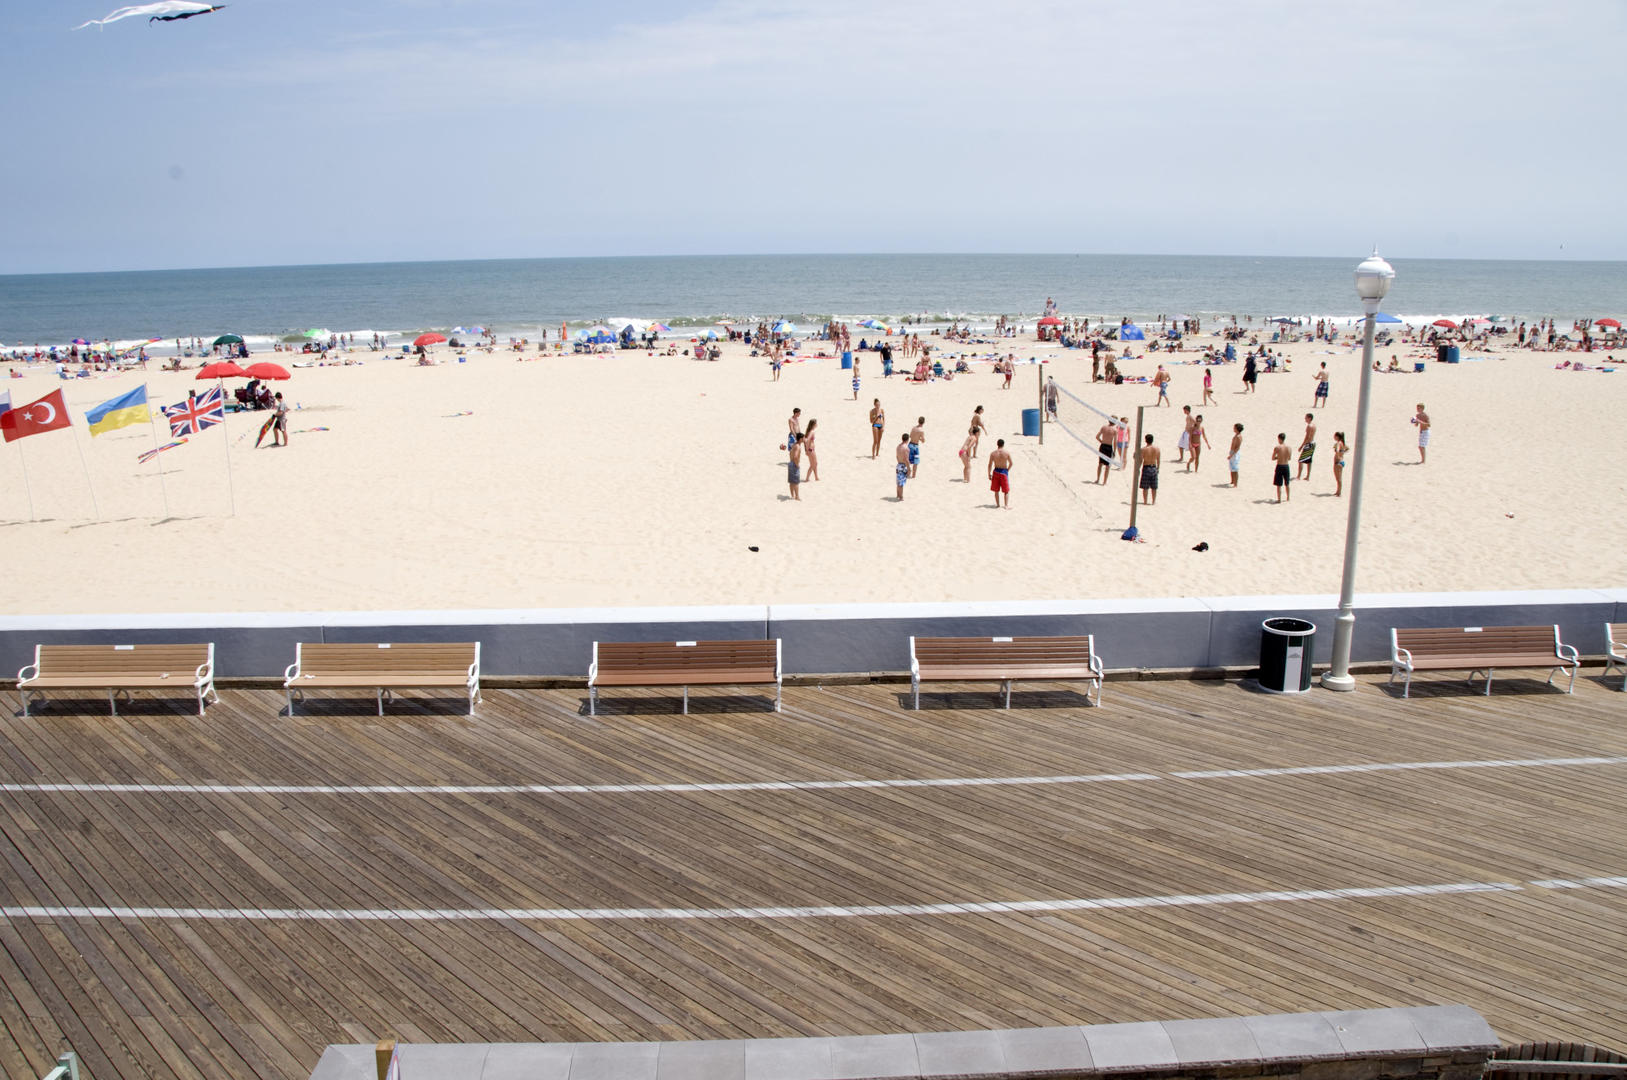 OC Boardwalk Suites S2 - View of Beach and Boardwalk